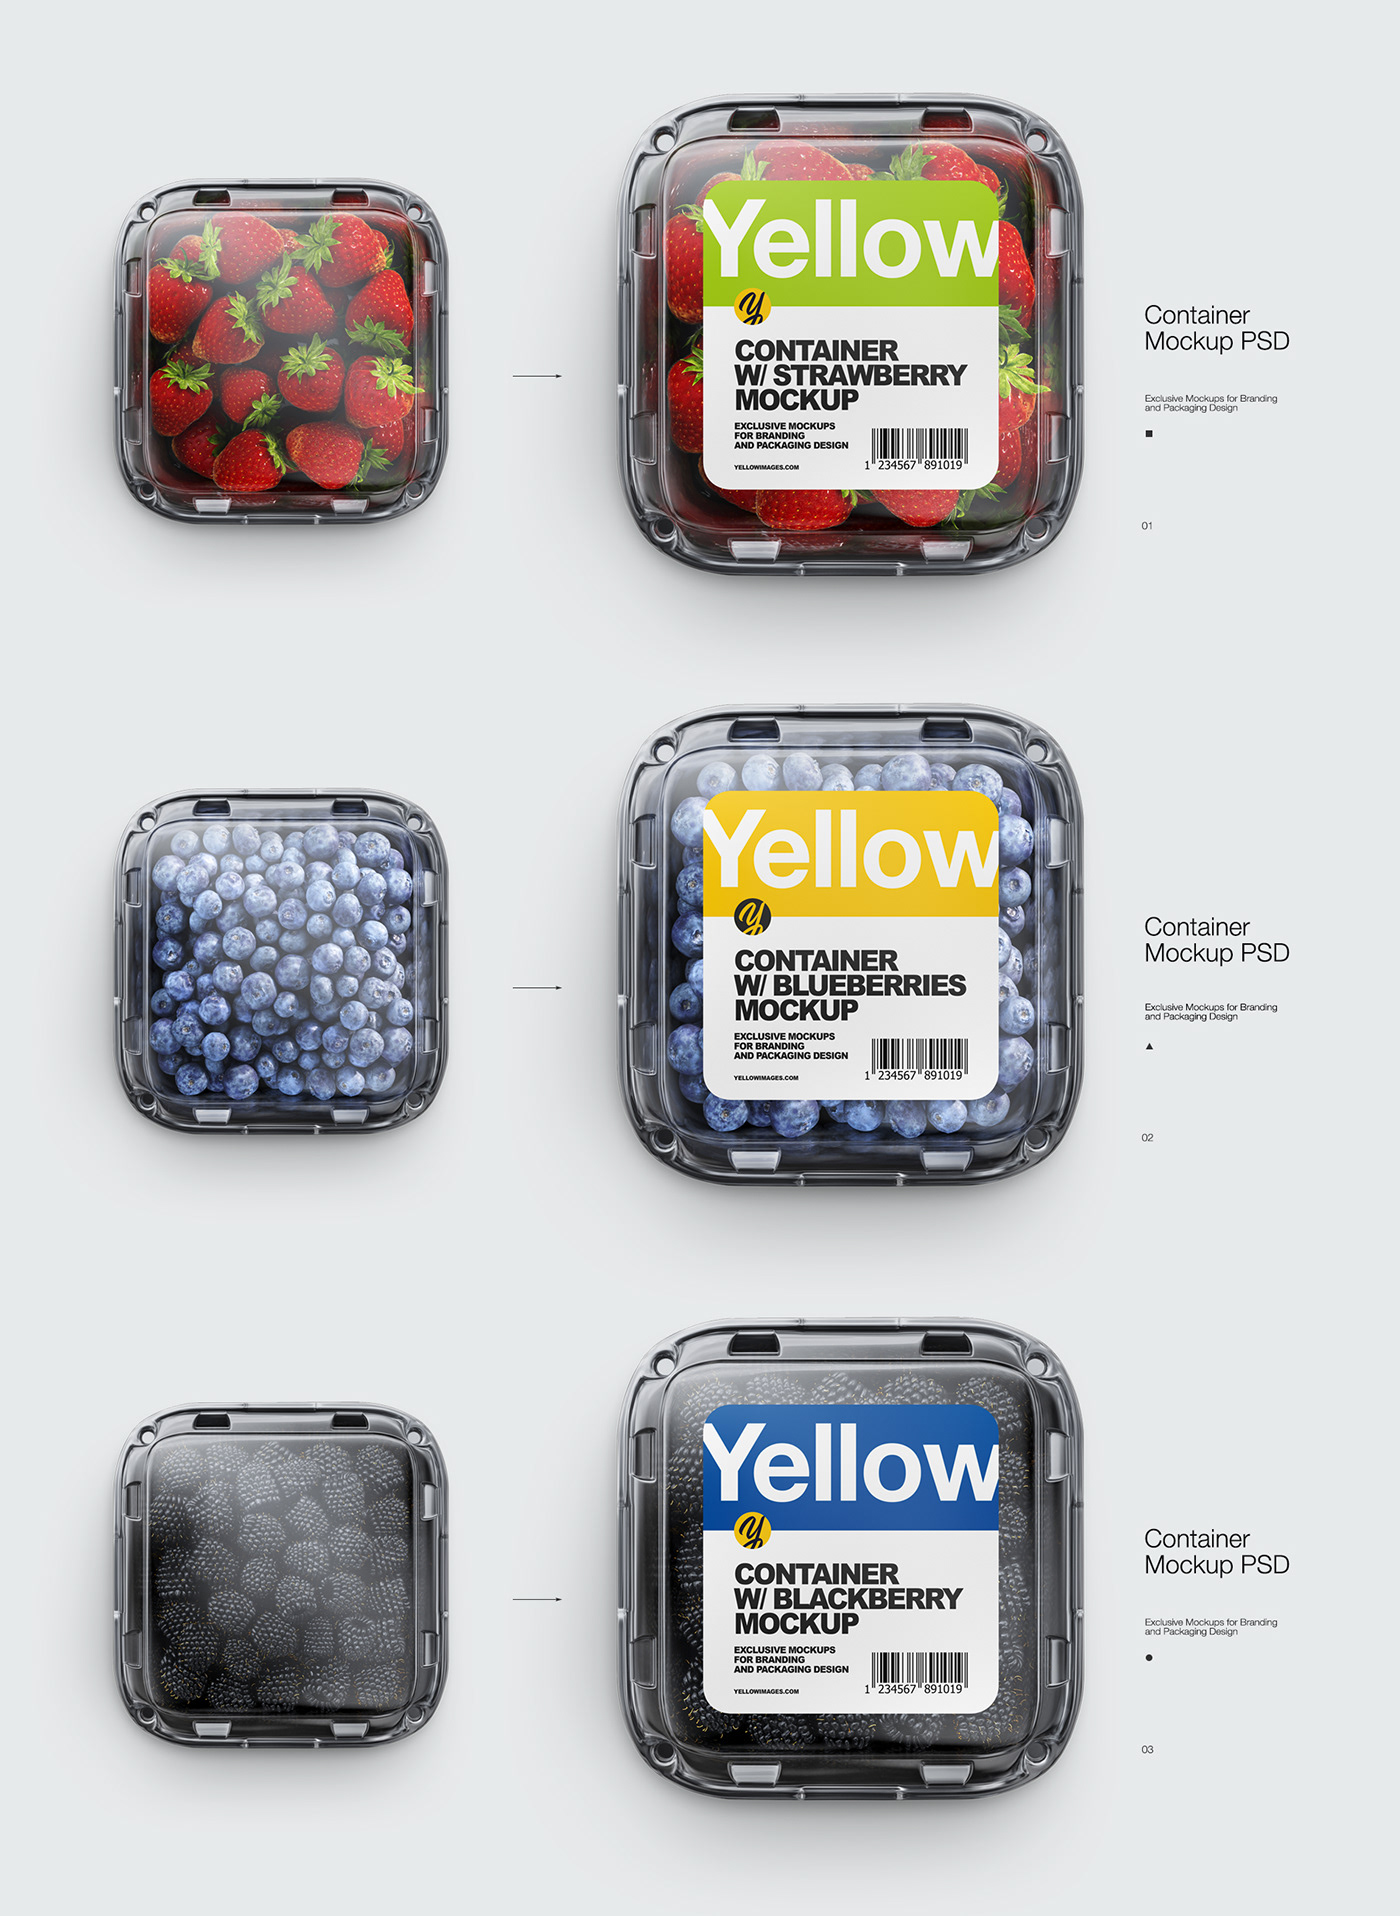 Download Containers Mockups Psd On Behance PSD Mockup Templates